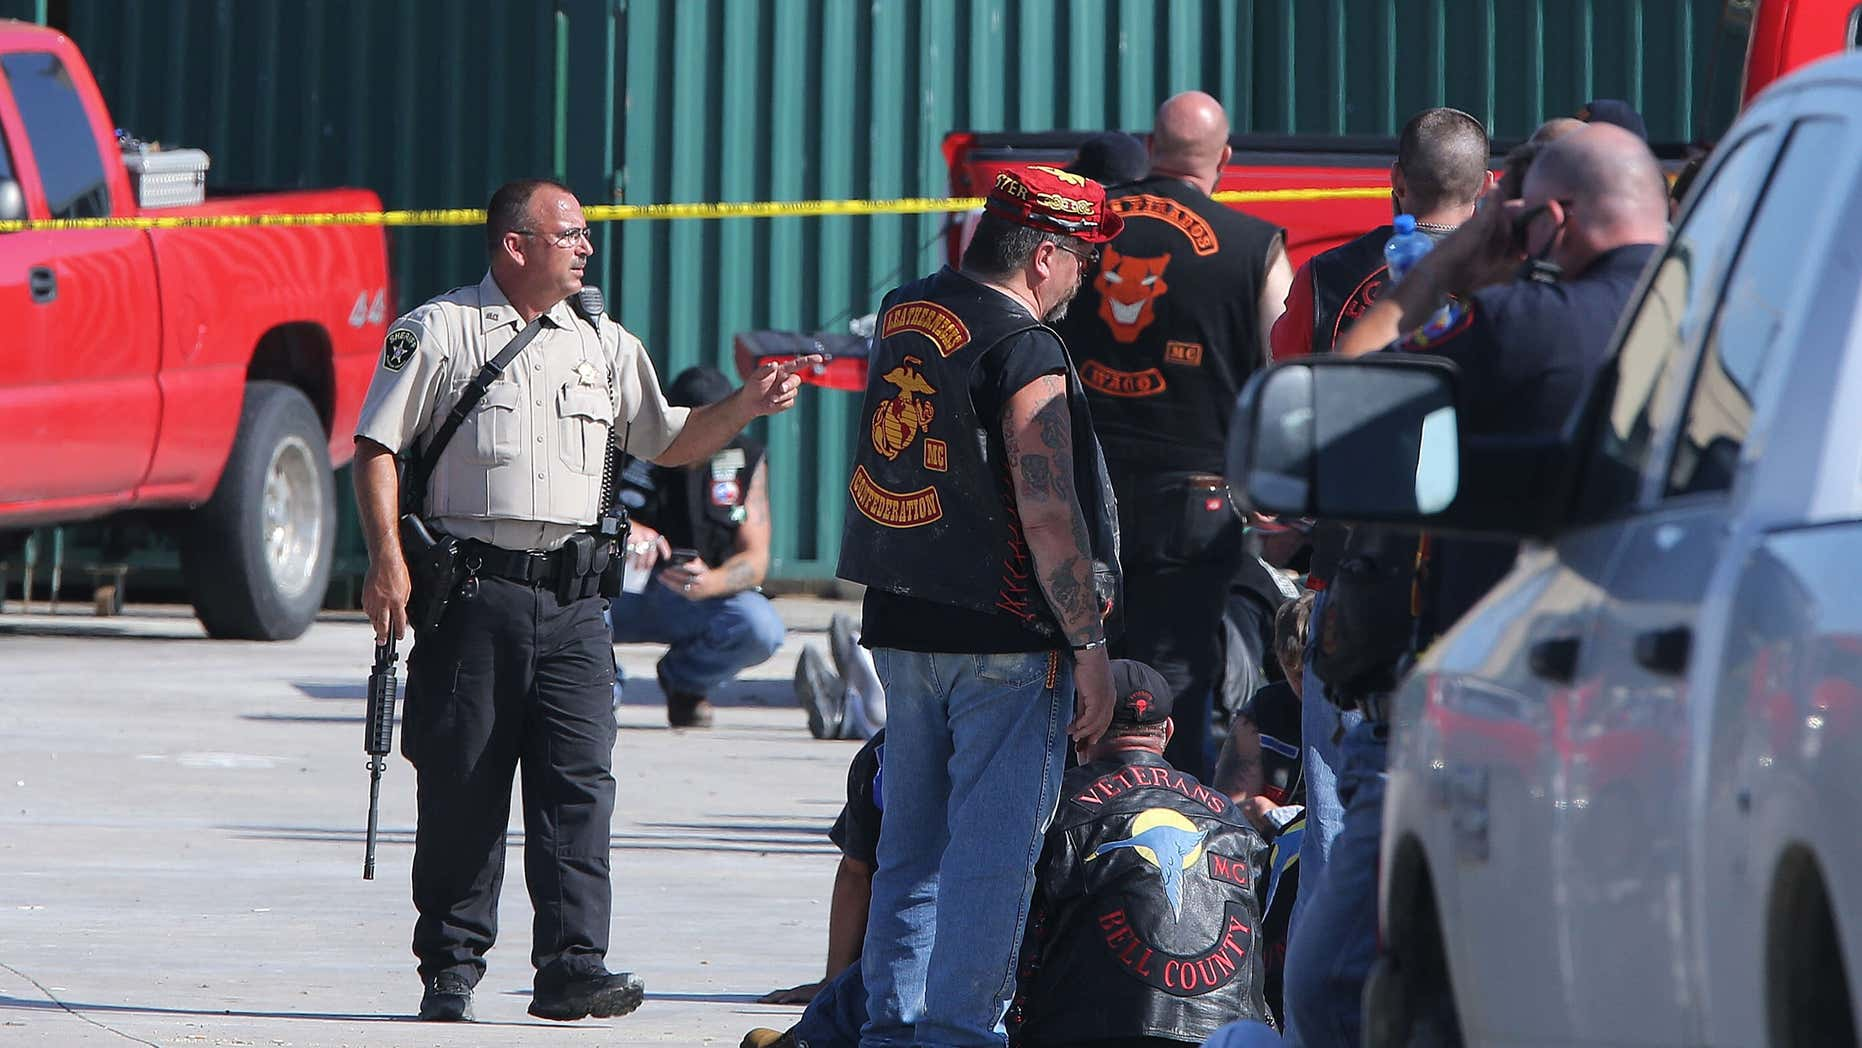 FILE - In this May 17, 2015, file photo, authorities investigate a shooting in the parking lot of the Twin Peaks restaurant in Waco, Texas.